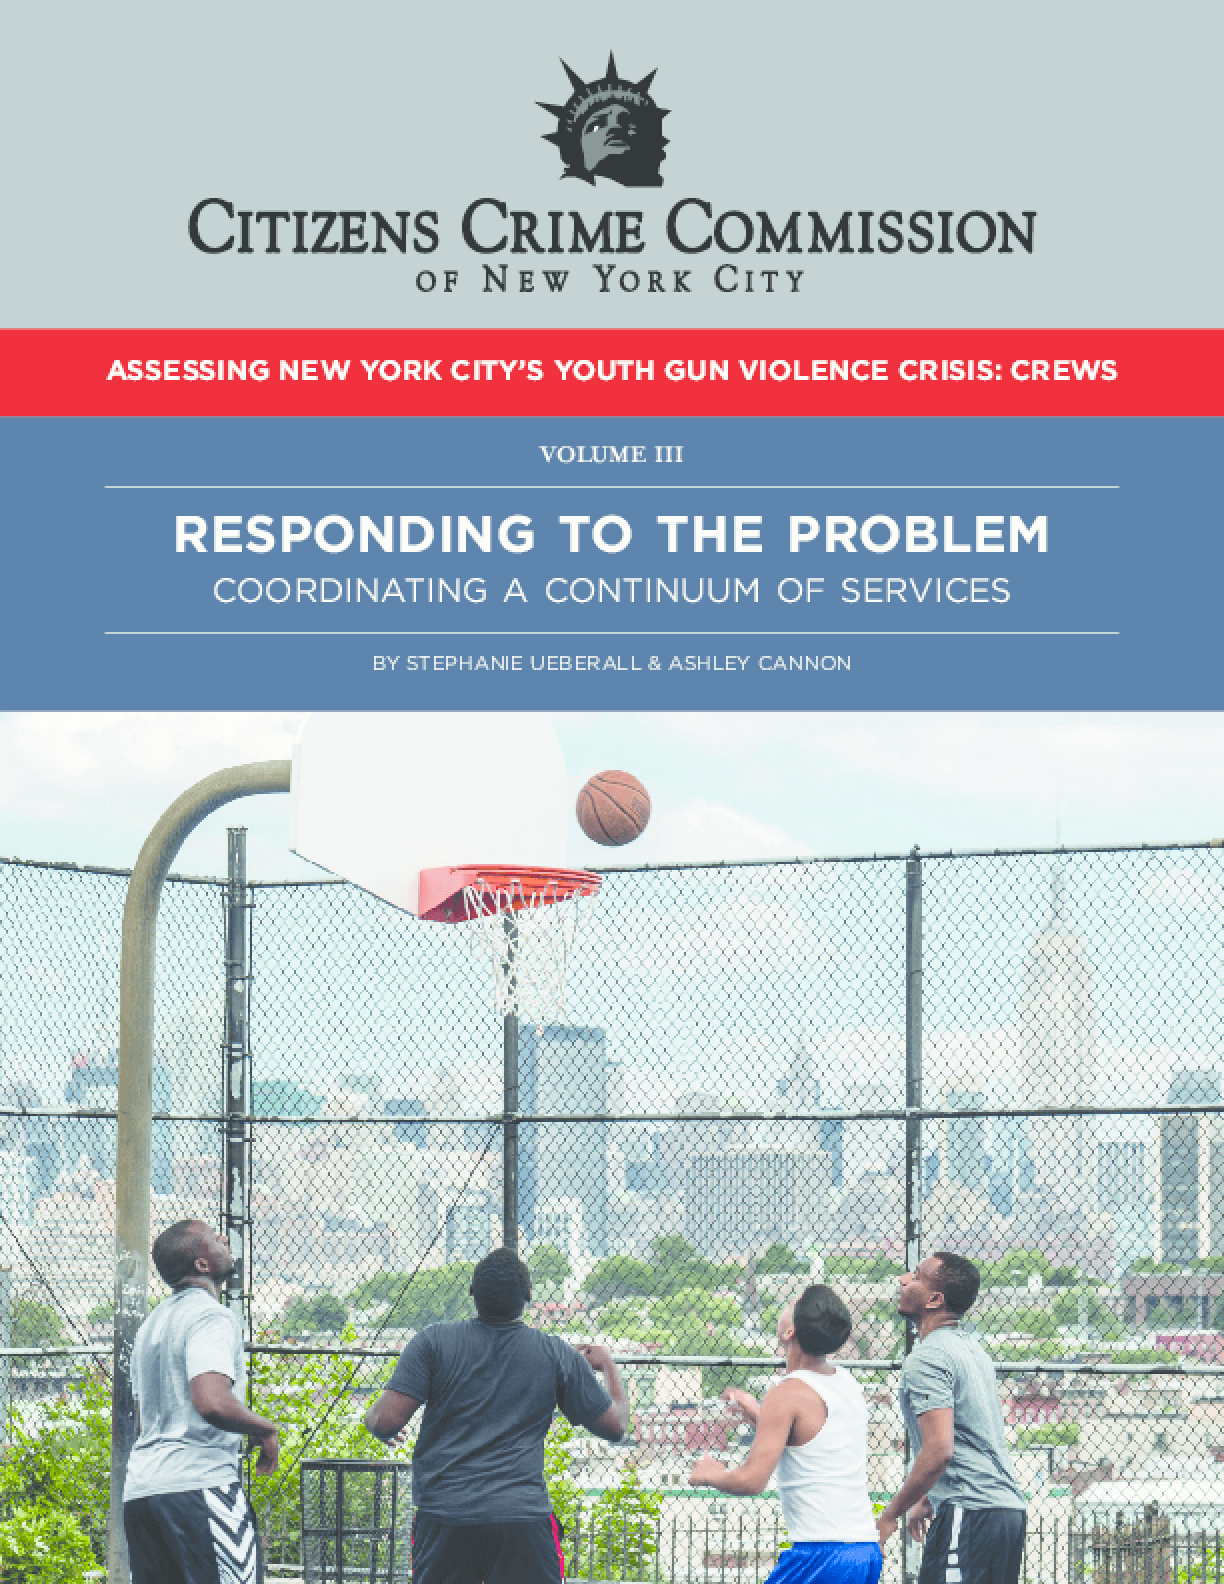 Assessing New York City's Youth Gun Violence Crisis: Crews - Volume III - Responding to the Problem: Coordinating a Continuum of Services